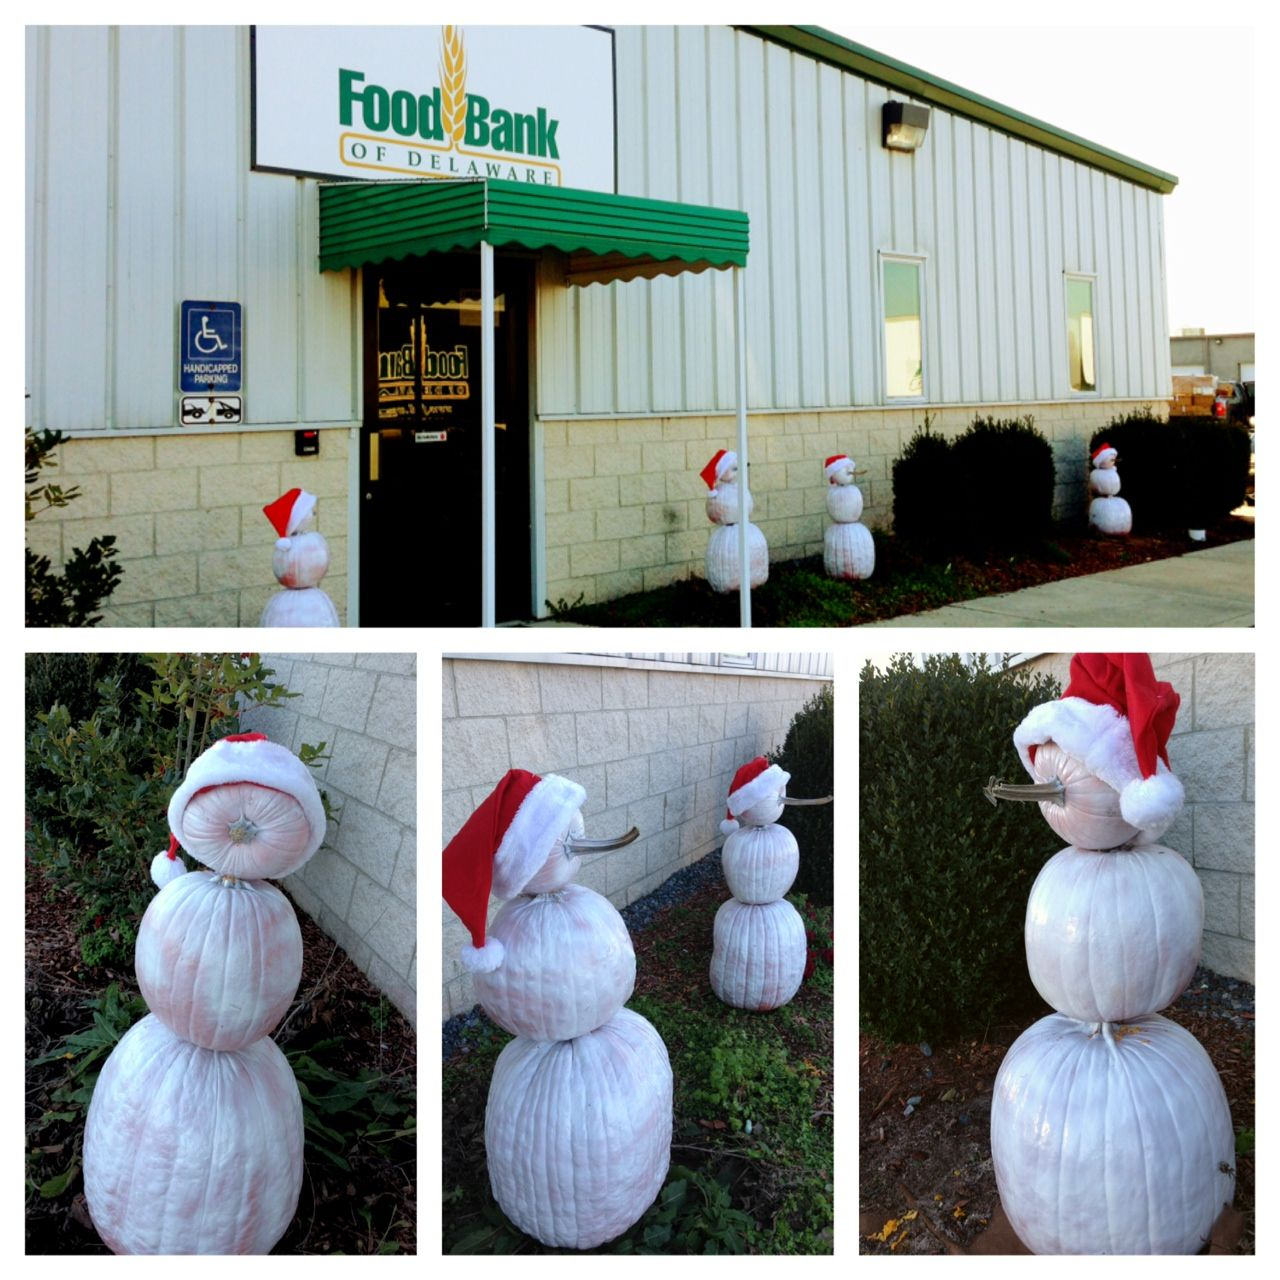 A great way to use fall pumpkins for the holidays! Spray pumpkins white for adorable snowmen!